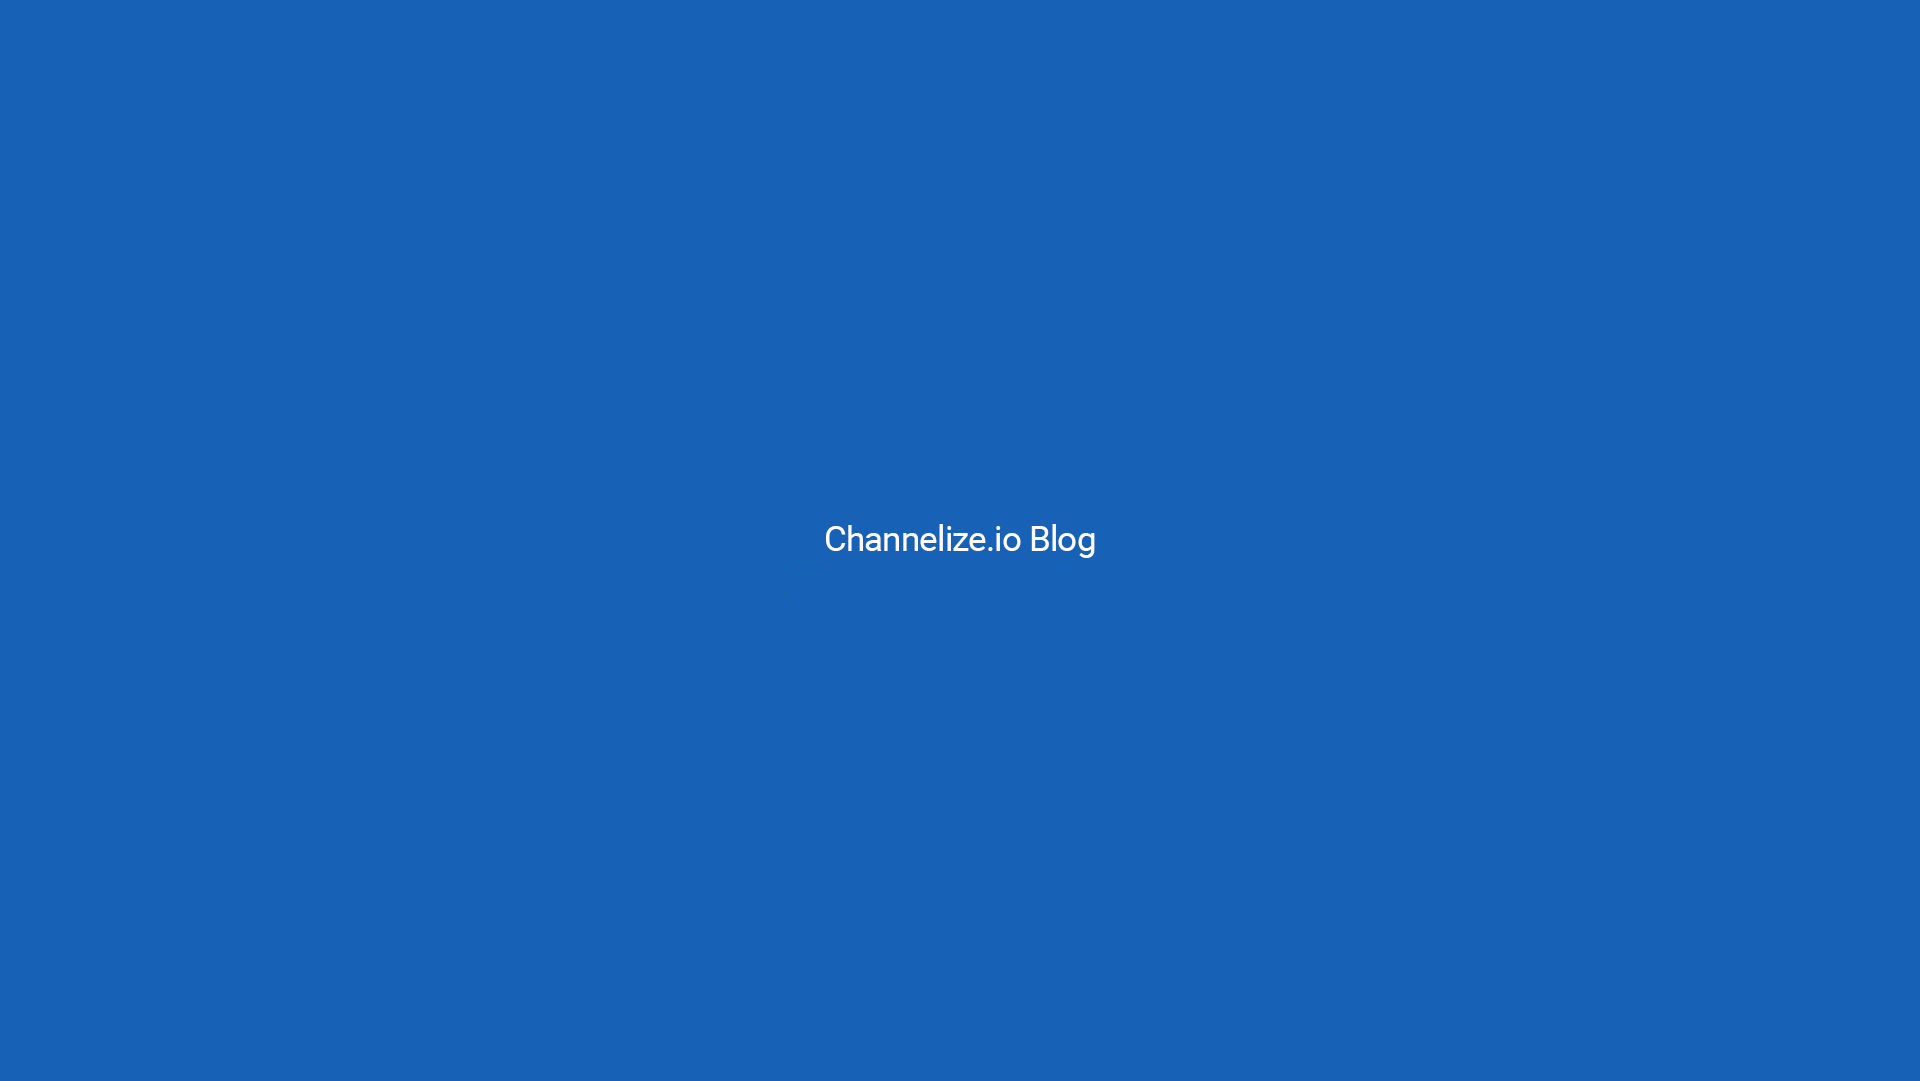 Channelize Blog